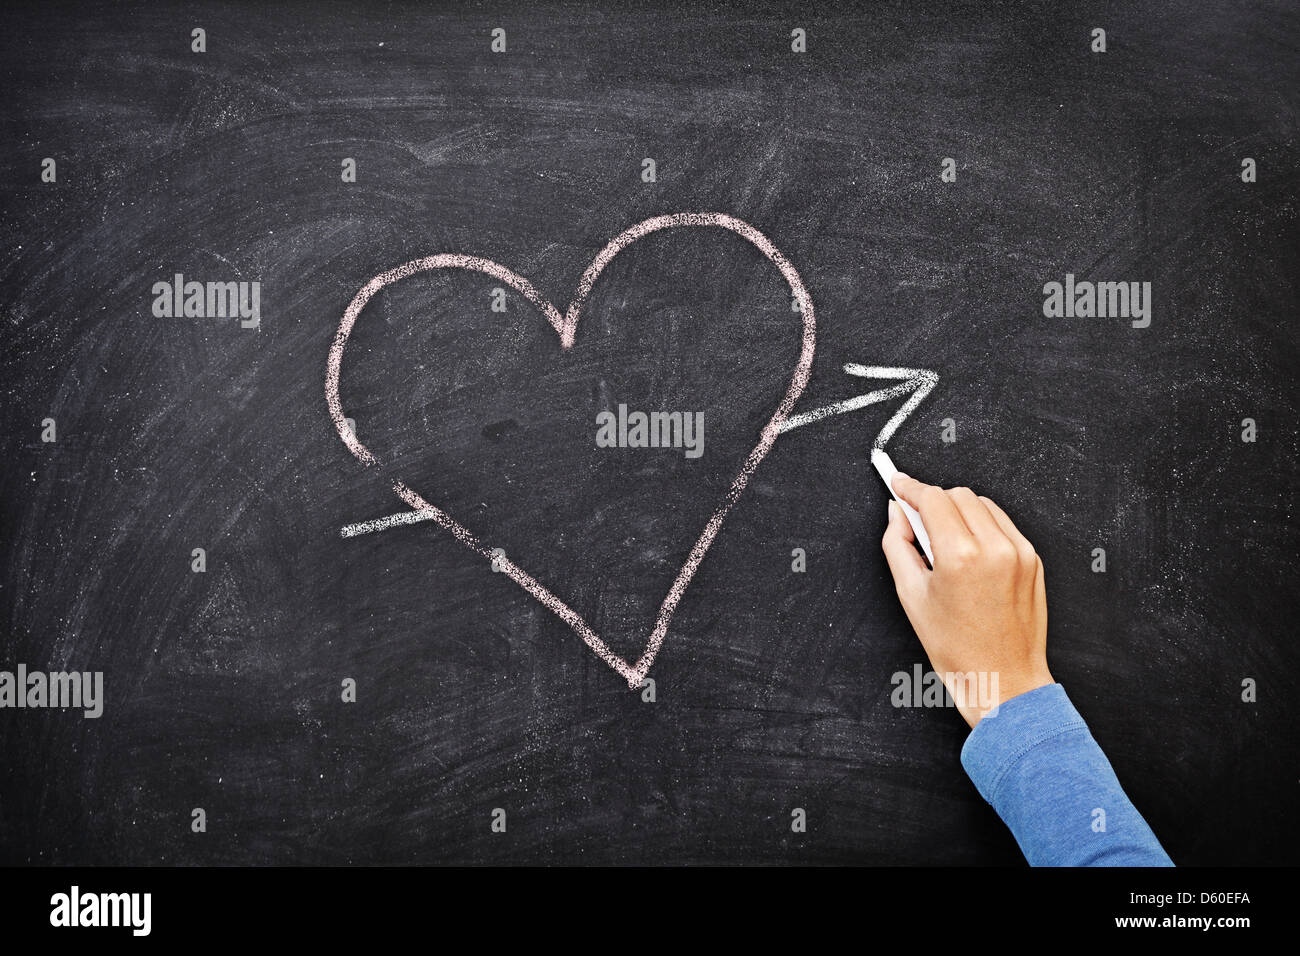 Hand drawing heart with chalk on chalkboard - love concept - Stock Image